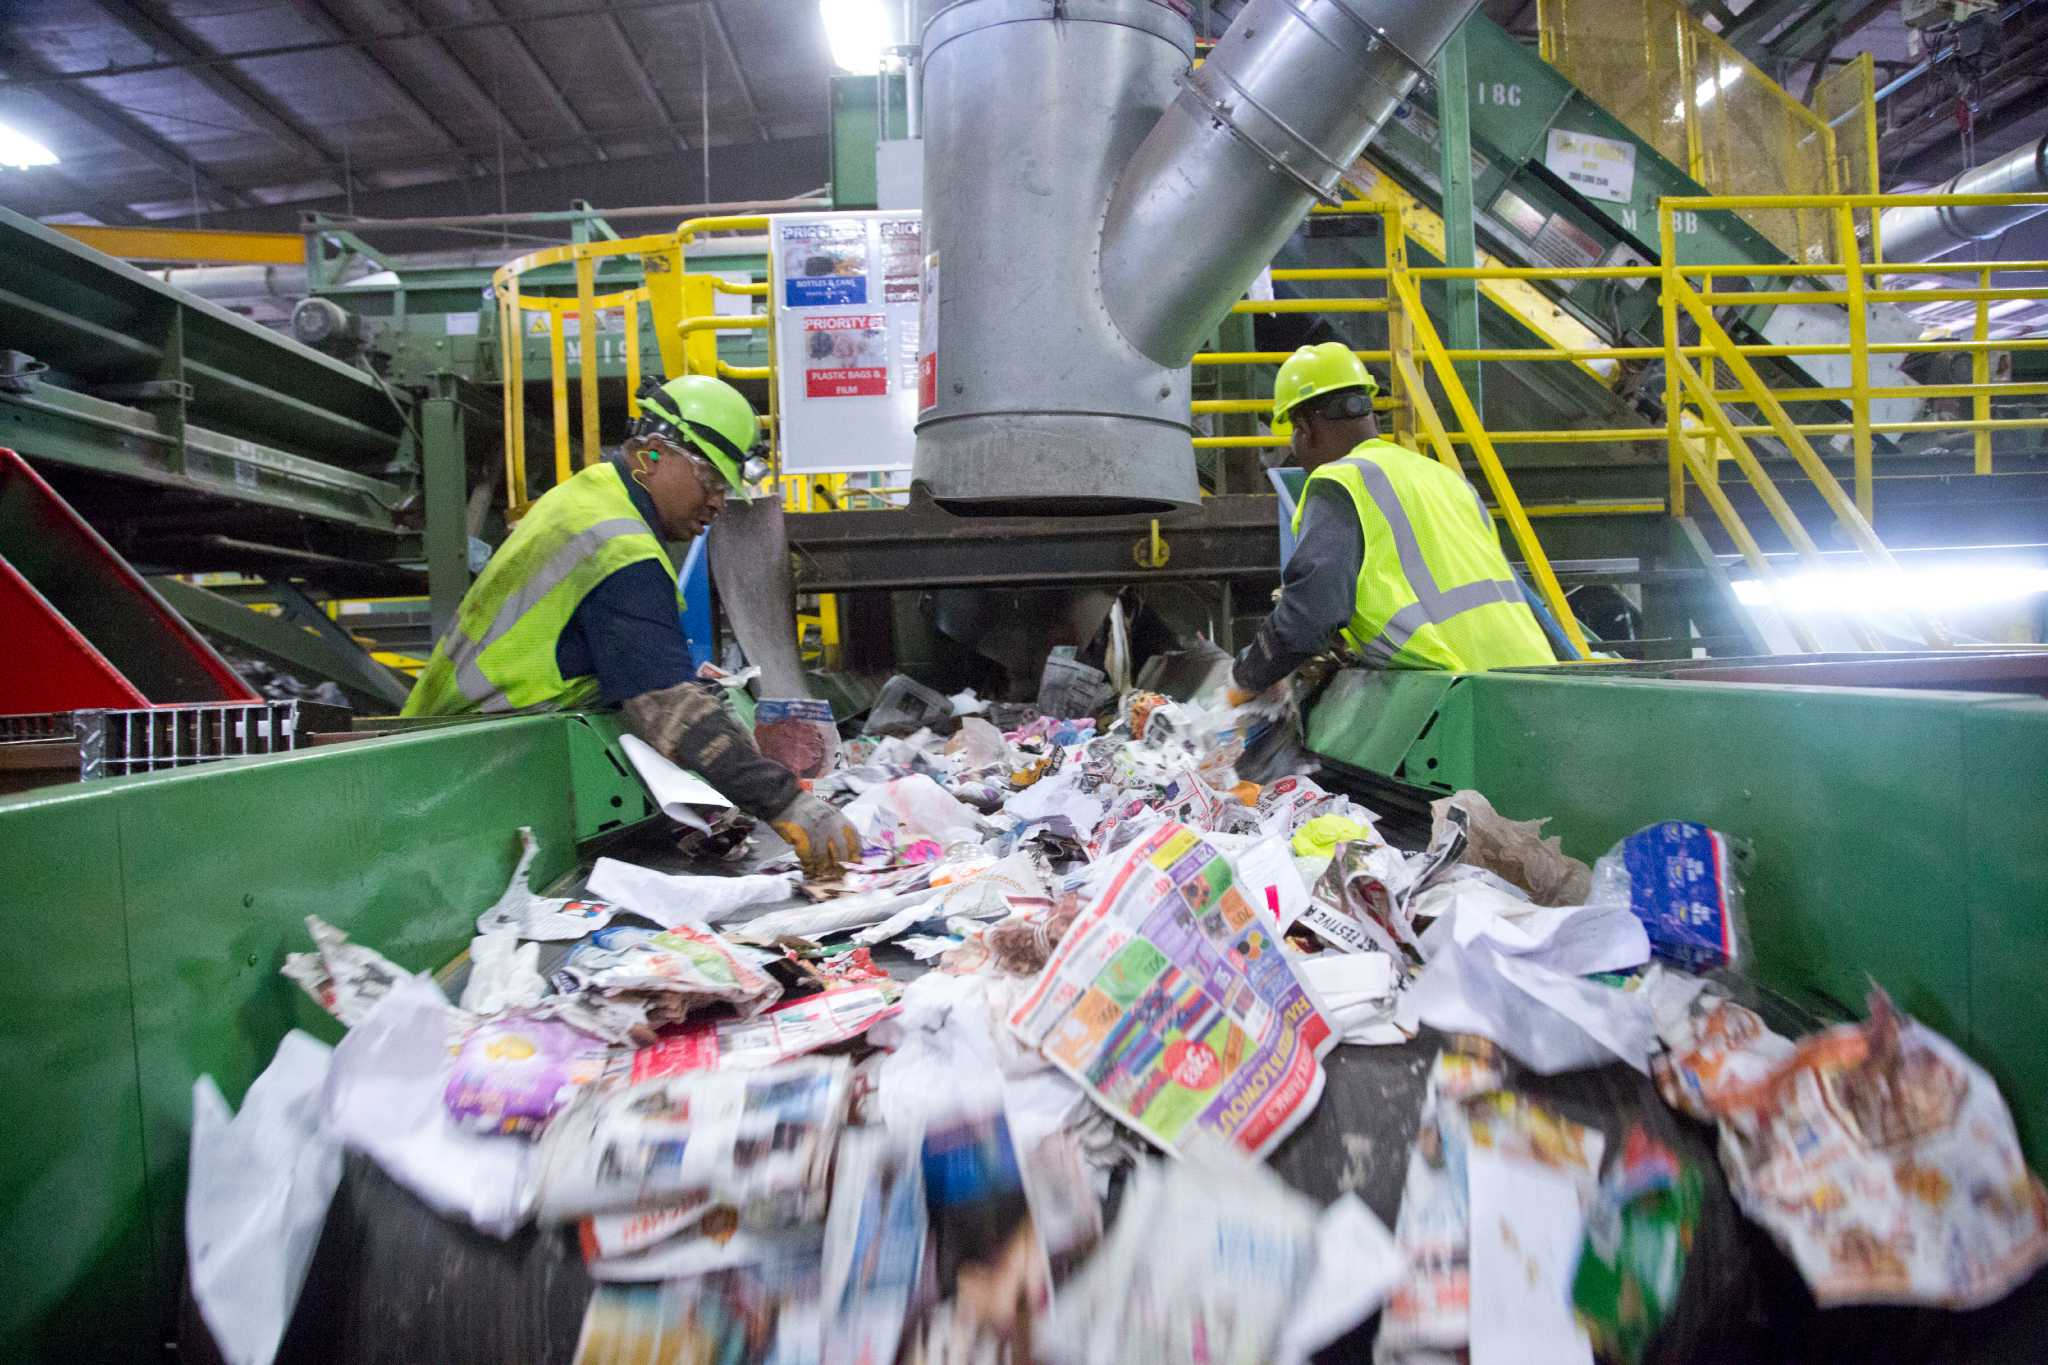 recycle paper for money houston 38 reviews of westpark recycling center my wife aluminum and paper in the if you don't live in a single family home in houston, and you want to recycle.